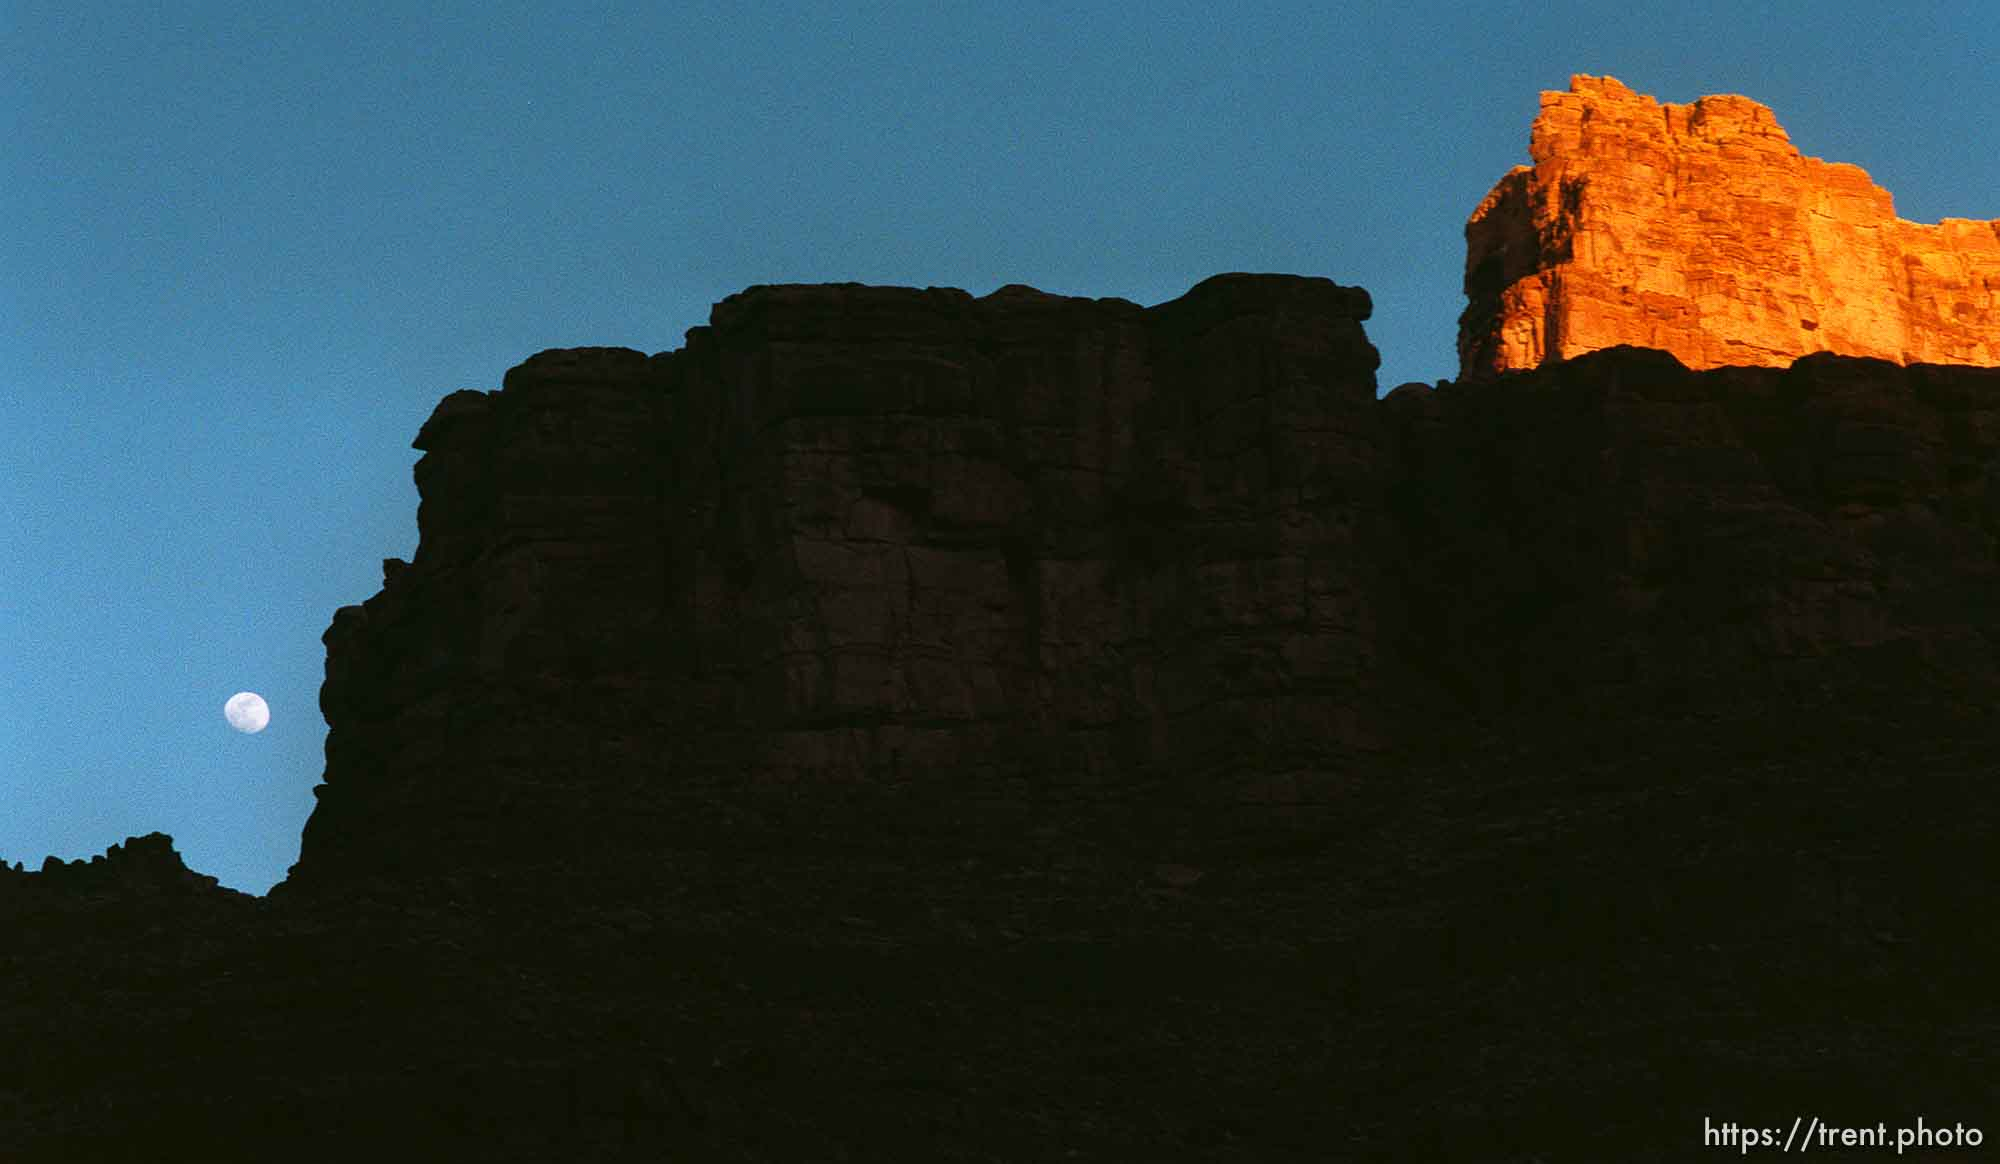 Full moon and canyon walls at sunset. Grand Canyon flood trip.